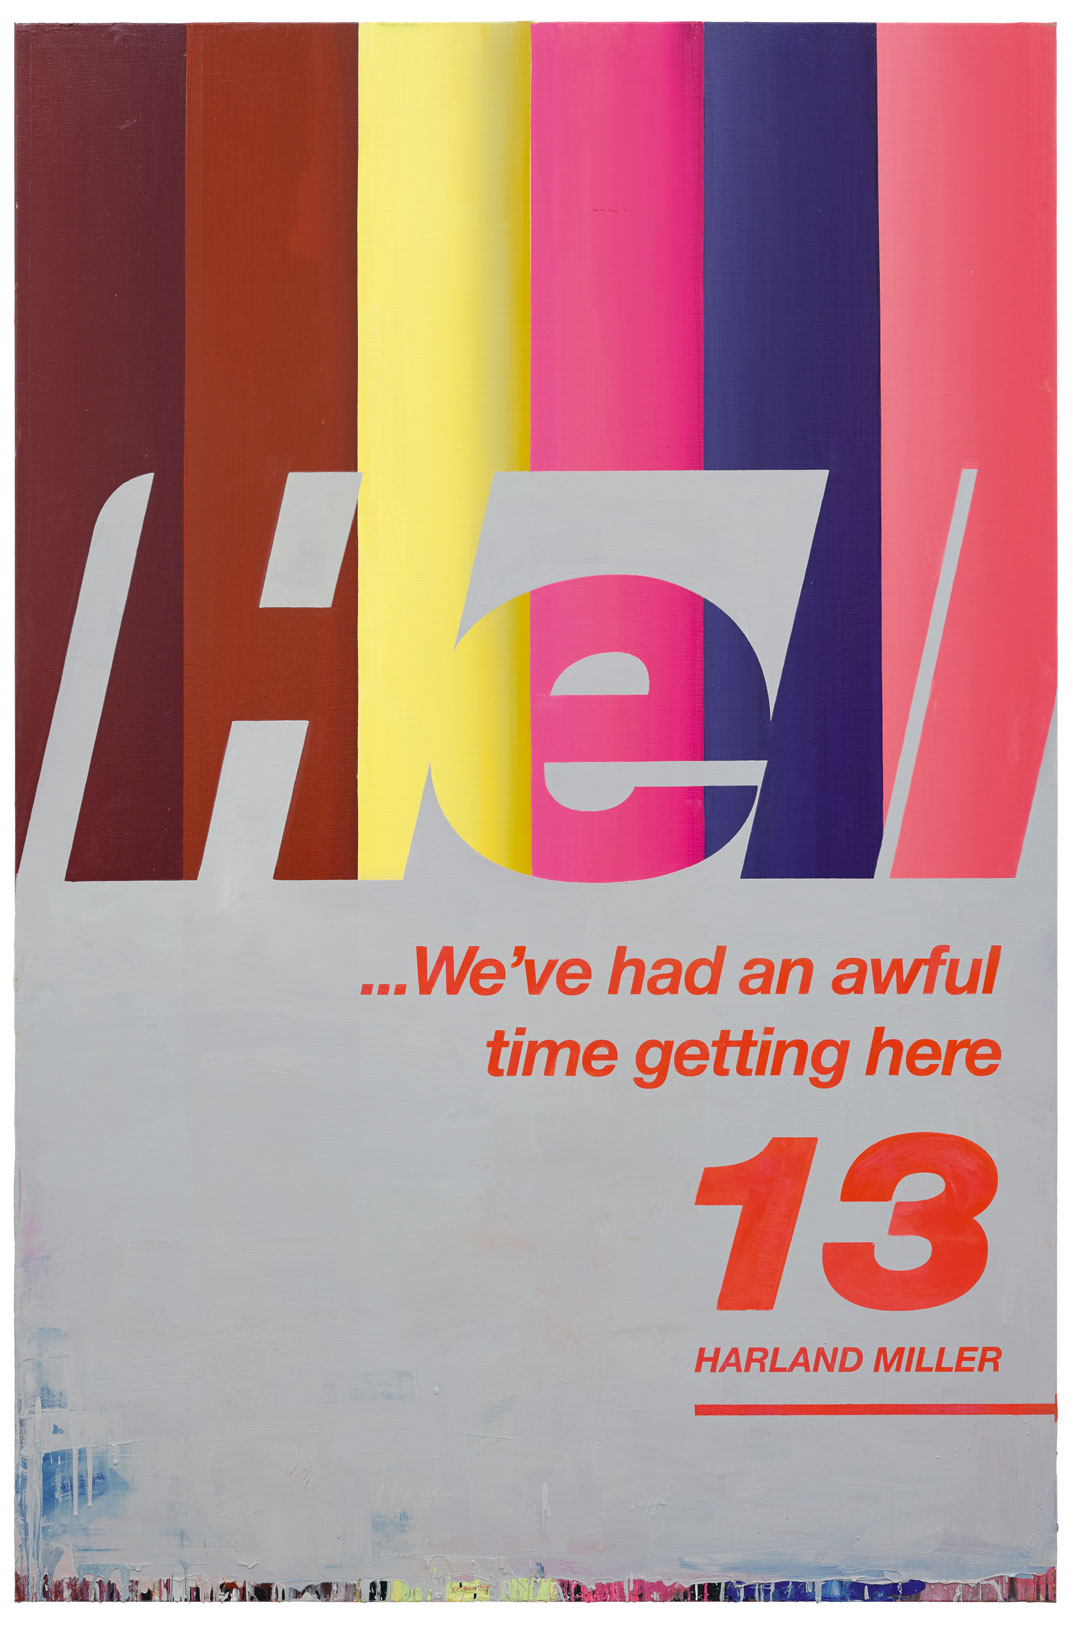 Hell…We've Had an Awful Time Getting Here 13 (2017) by Harland Miller